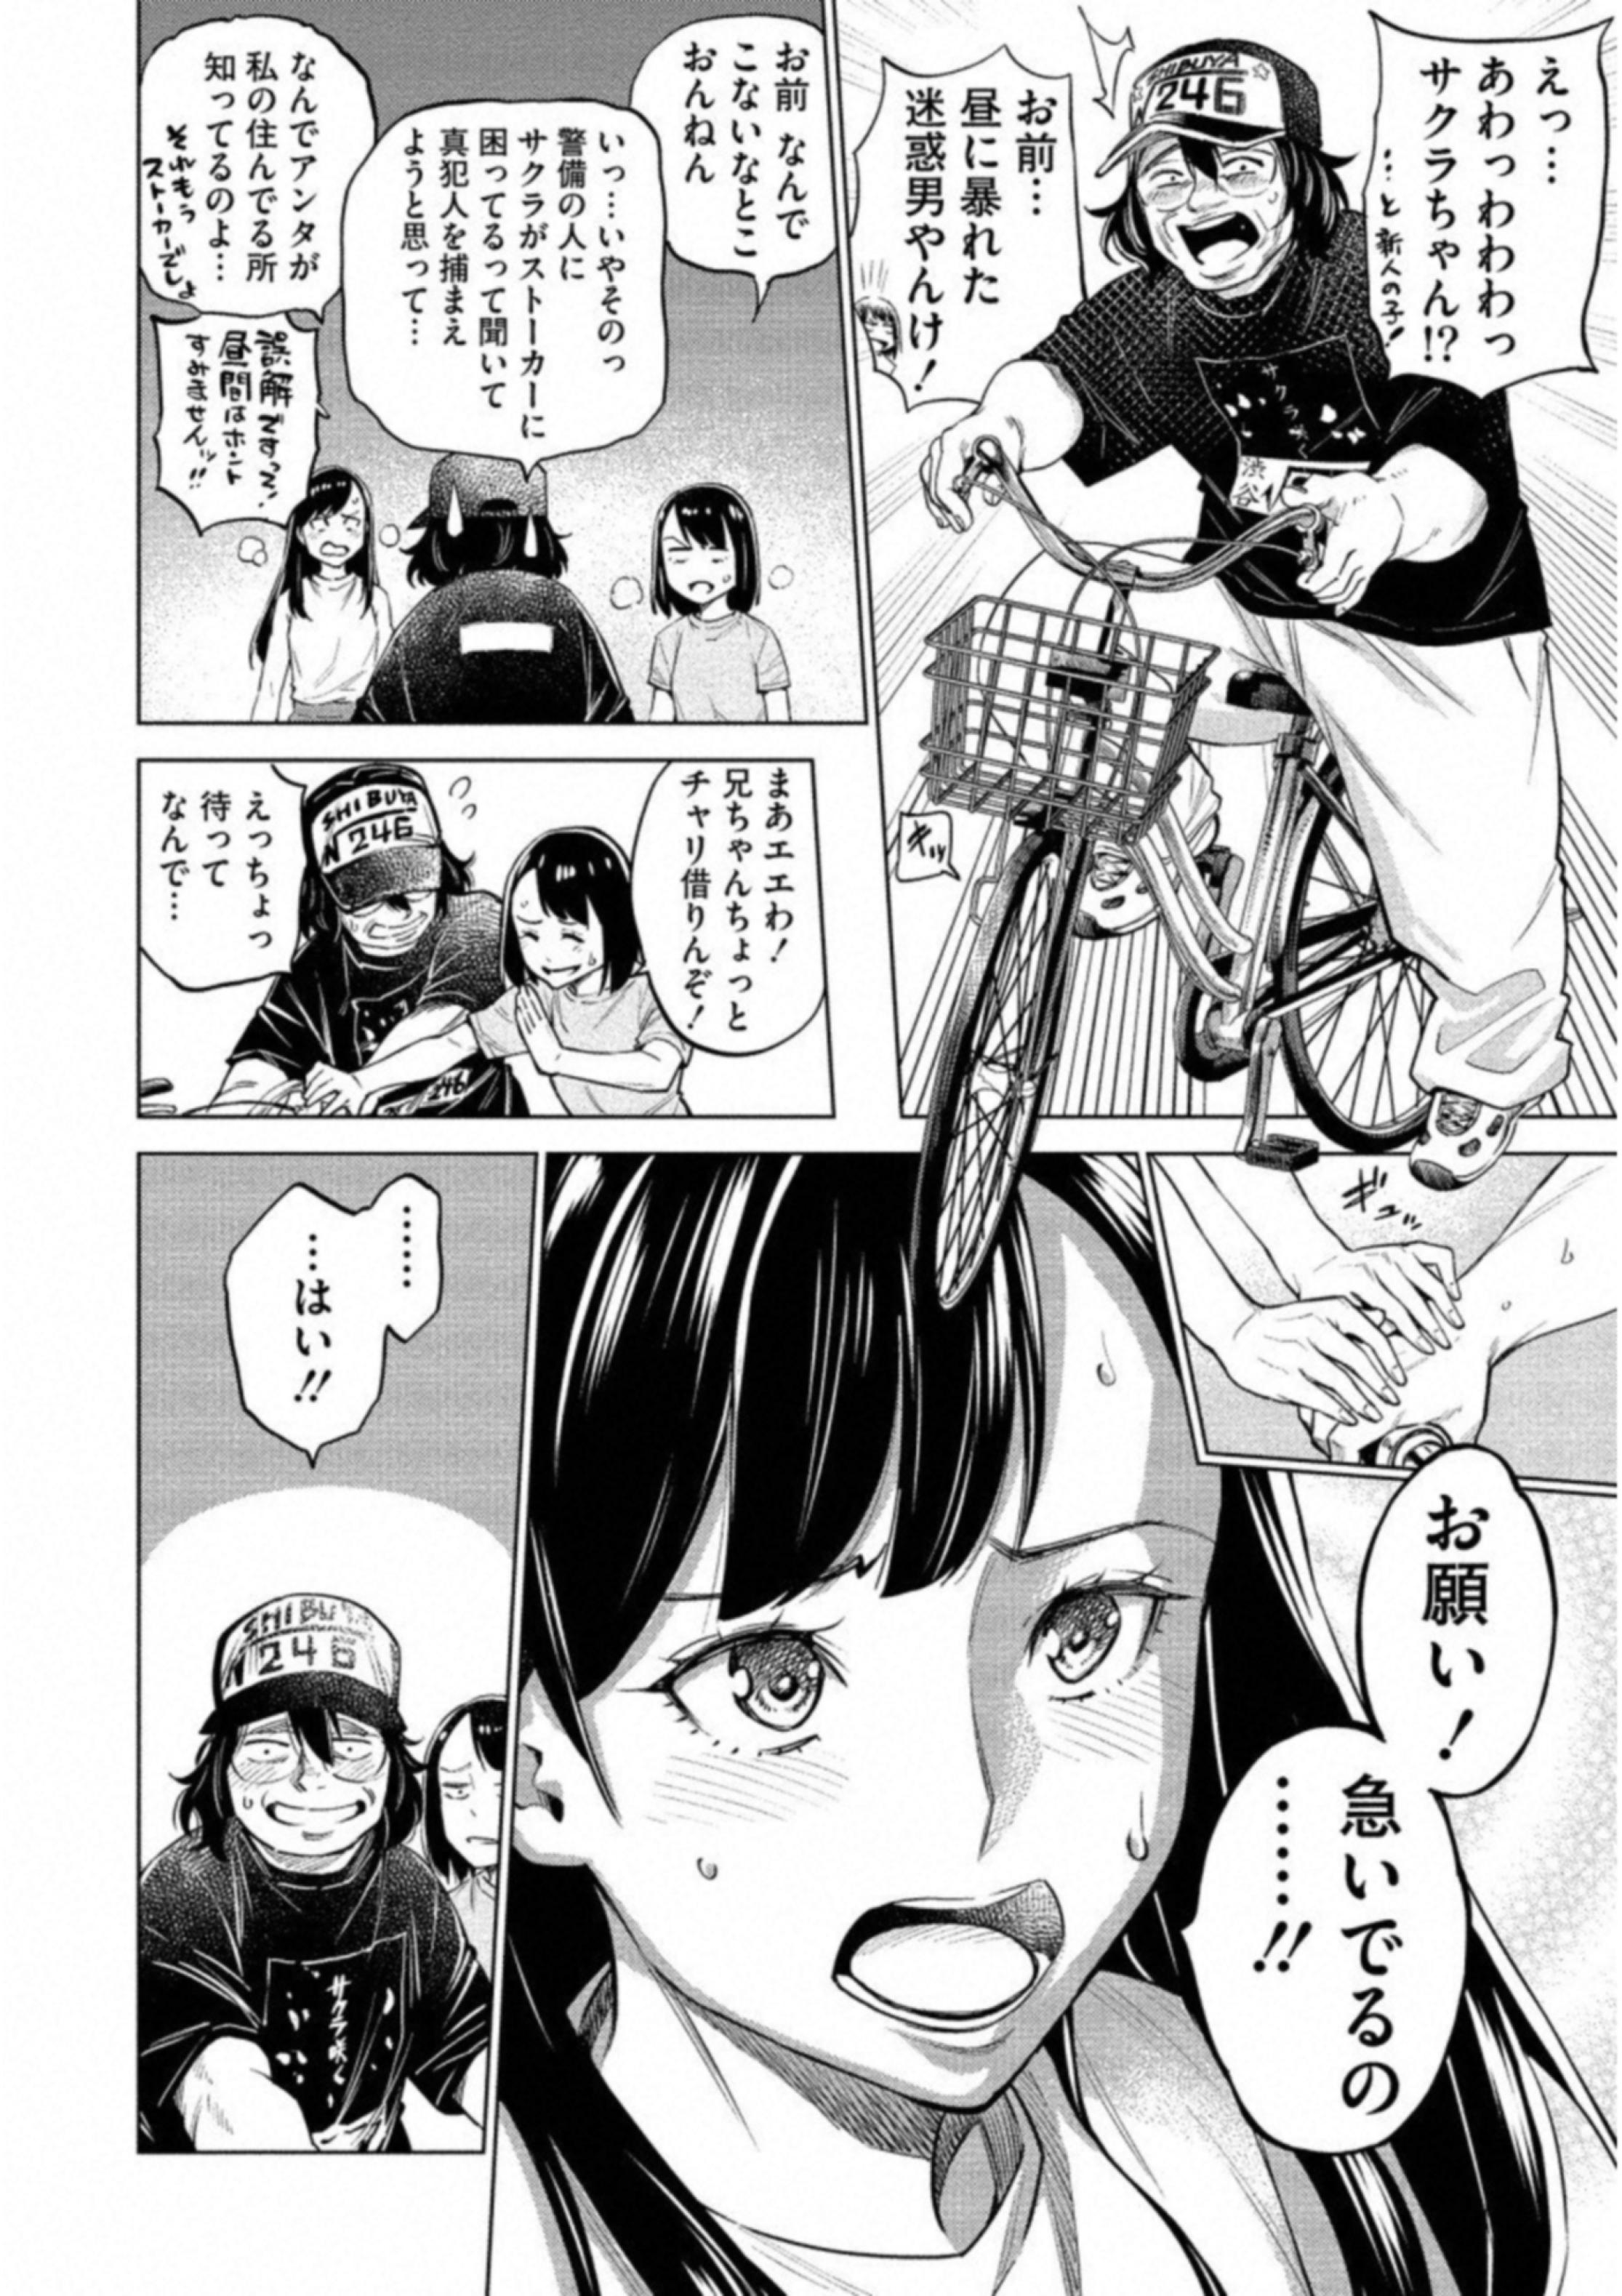 Manga Raw Dolkara Chapter 14